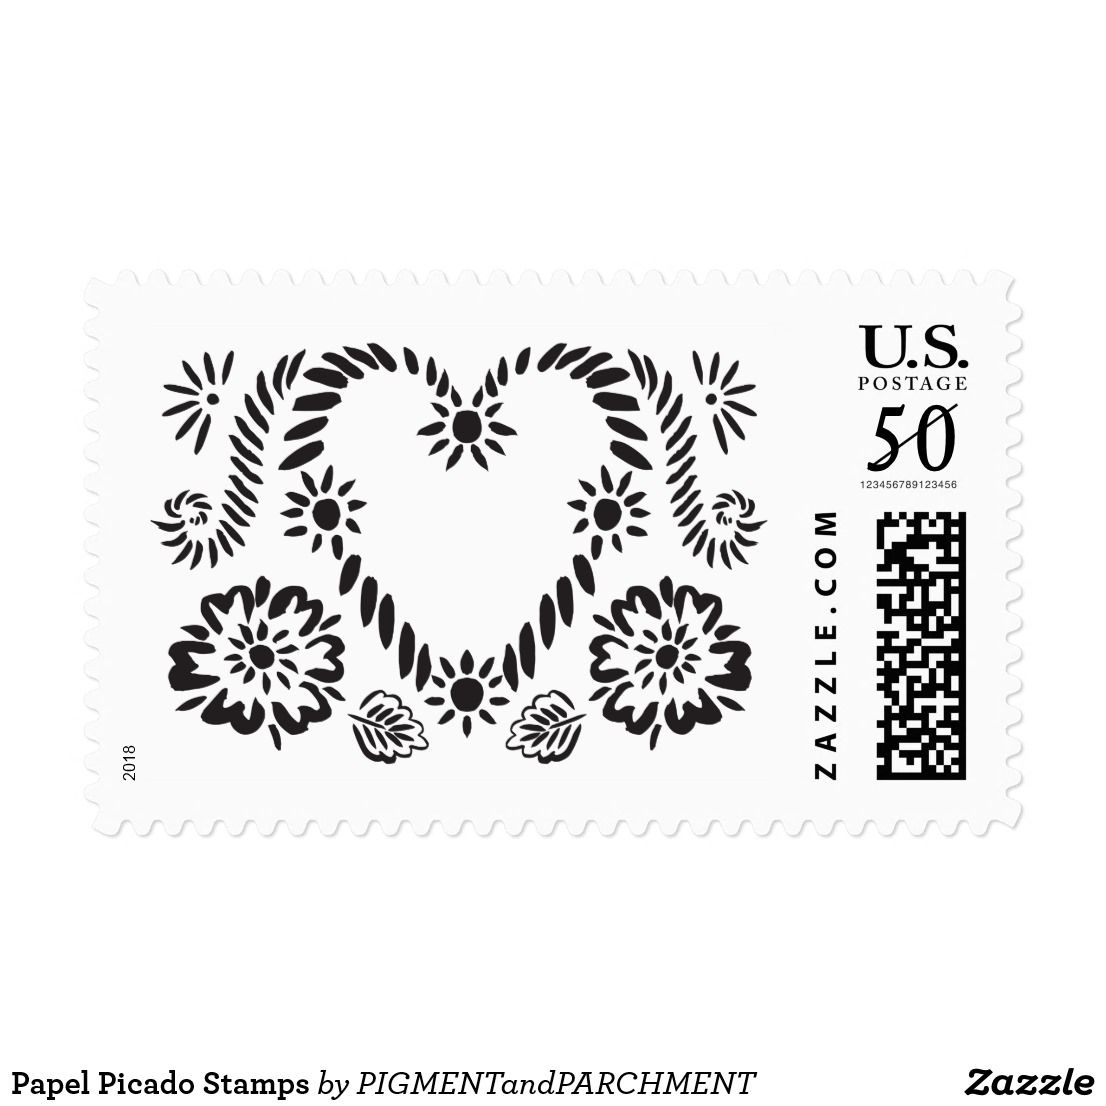 Papel Picado Stamps Love Flower Heart Flowers Black and White ...